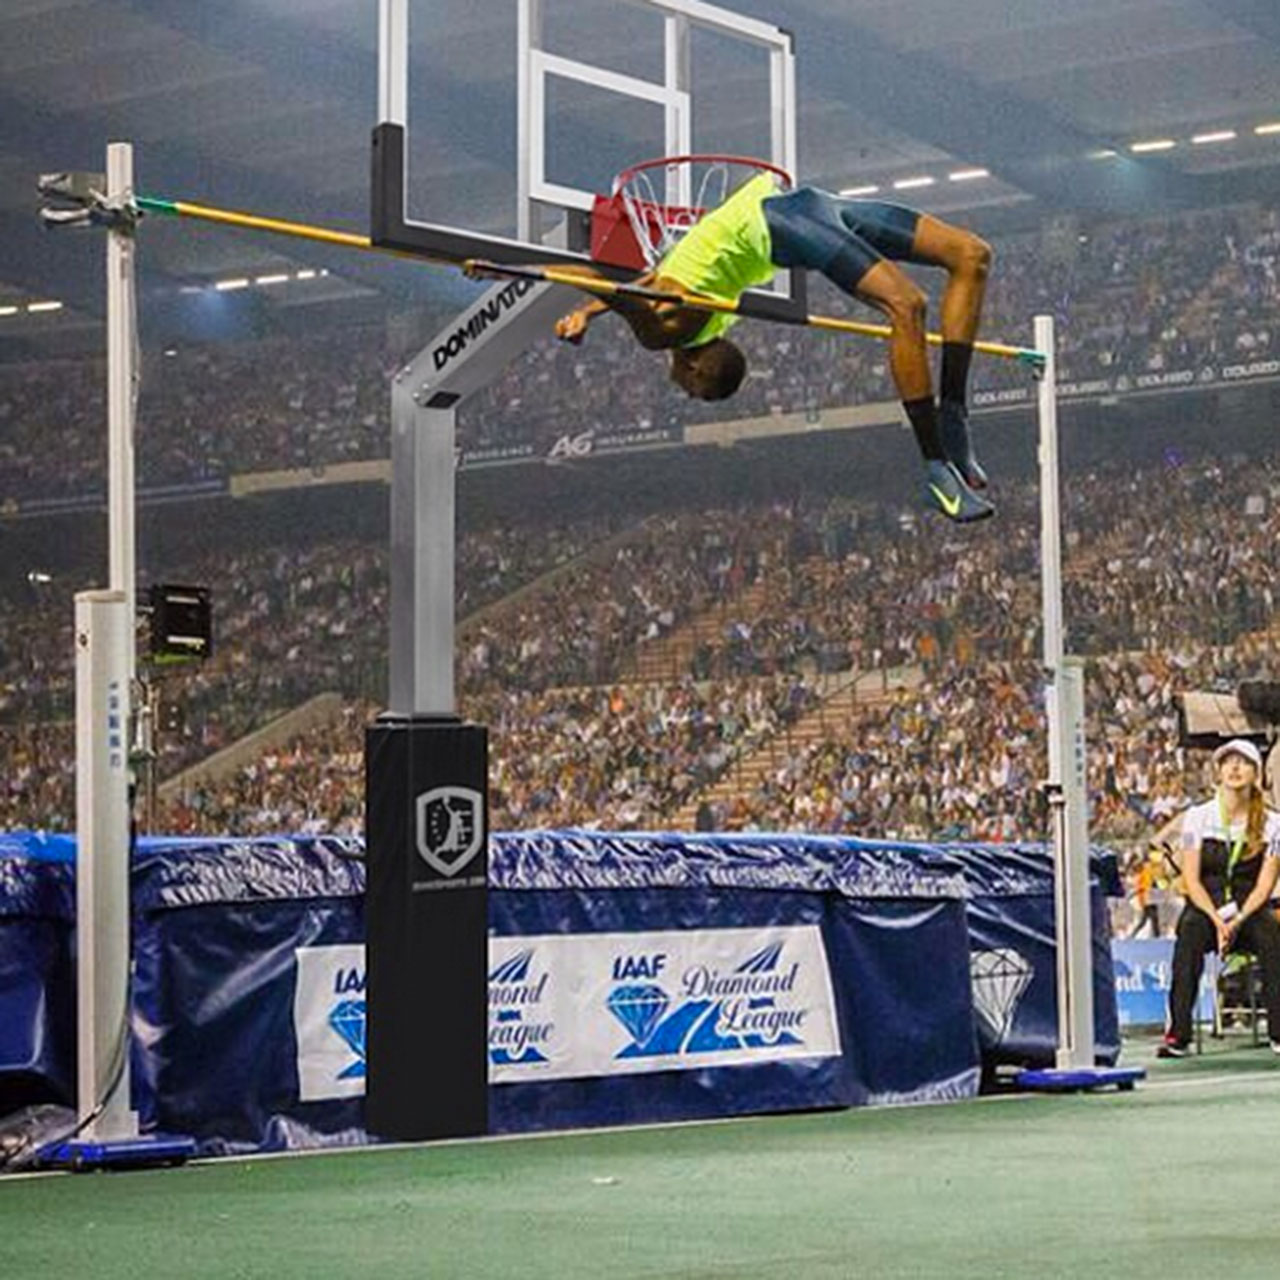 Essa Barshim flirted with rewriting long-established gravitational laws